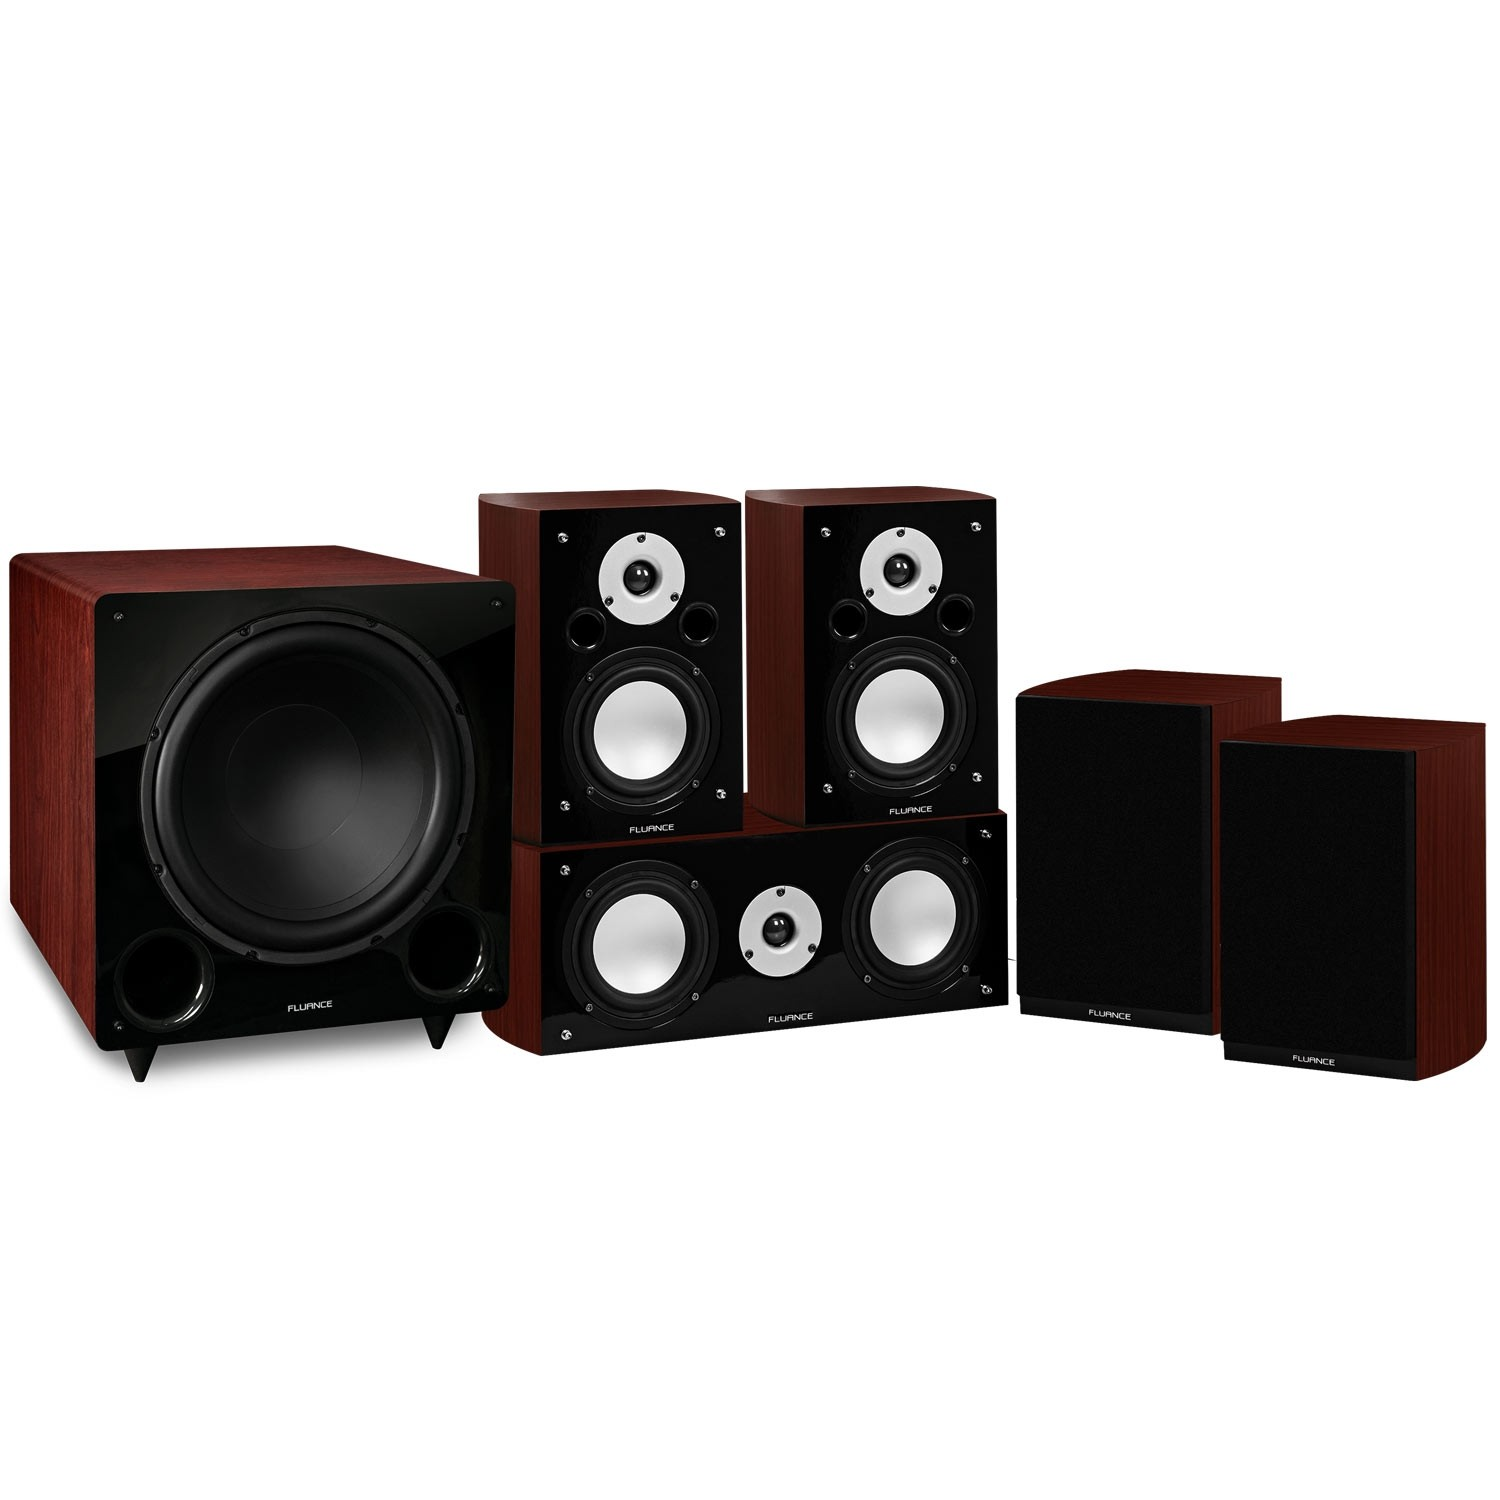 Reference Series Mahogany Compact Surround Sound Home Theater 5.1 Channel Speaker System - Main